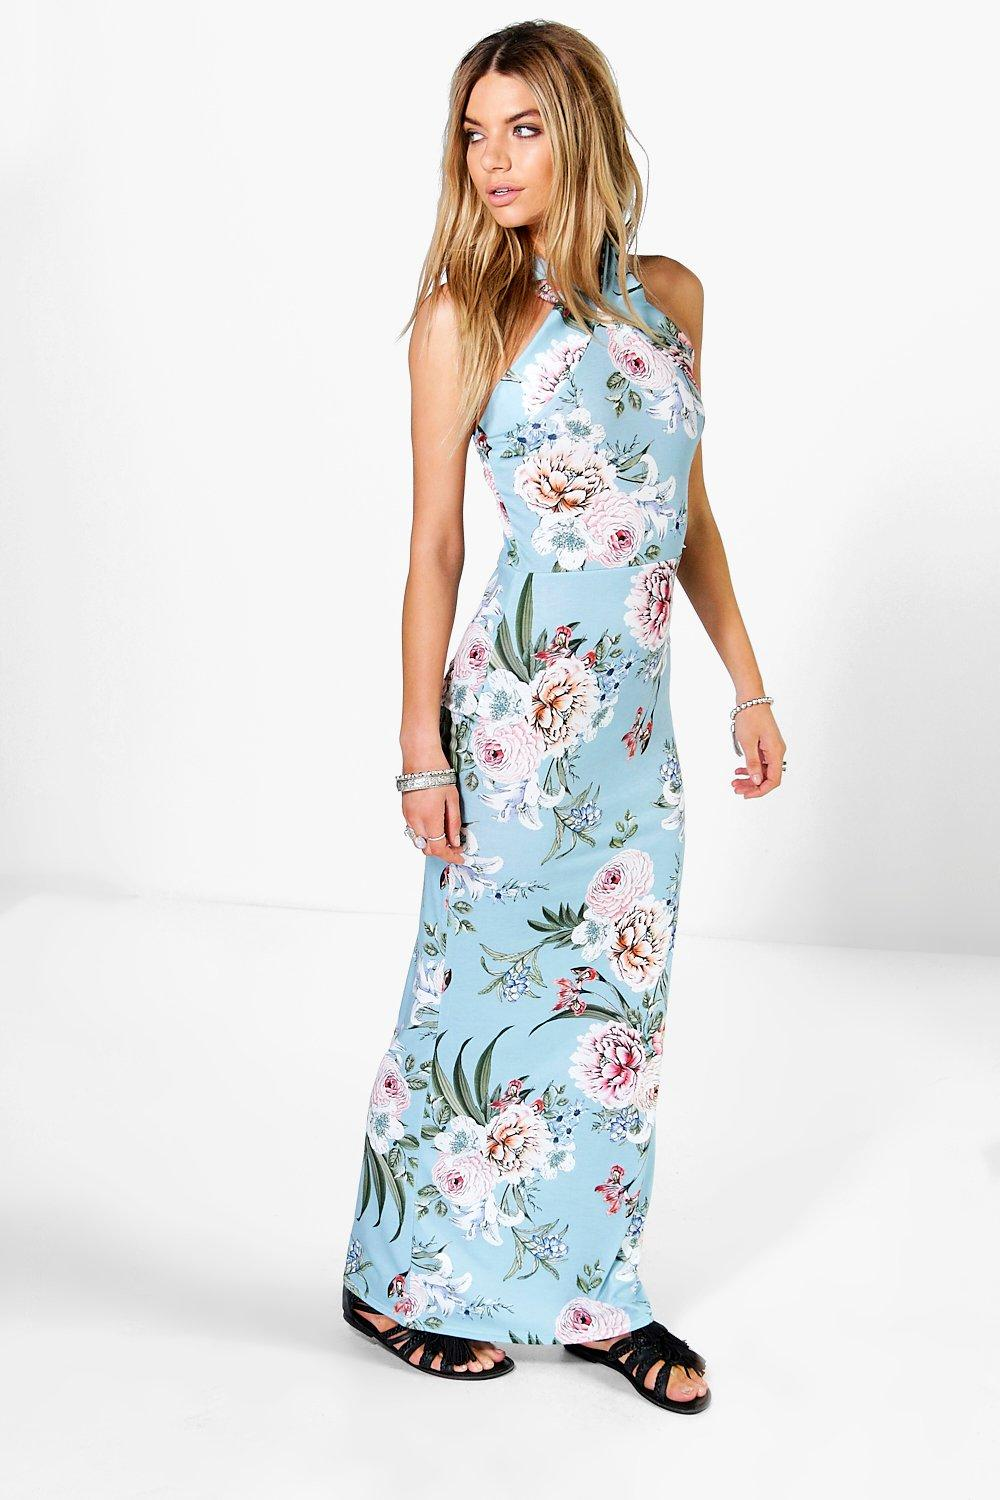 Sofia floral printed high neck maxi dress at for Boohoo dresses for weddings